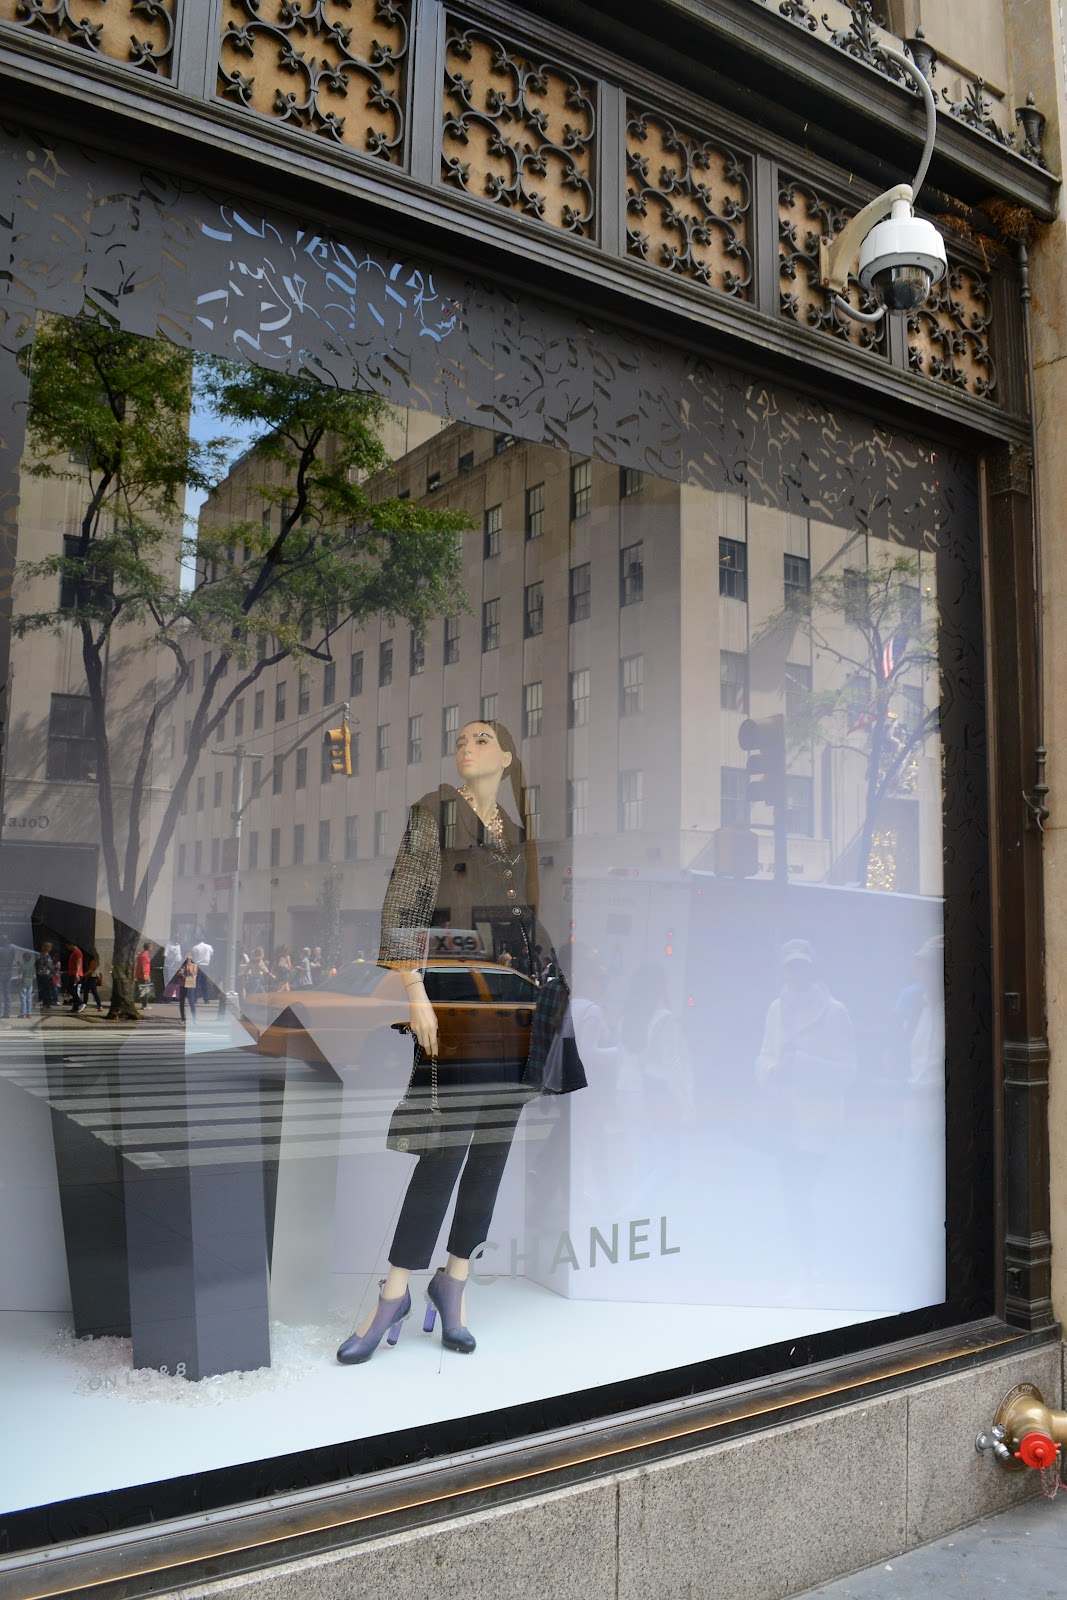 chanel window 5th avenue